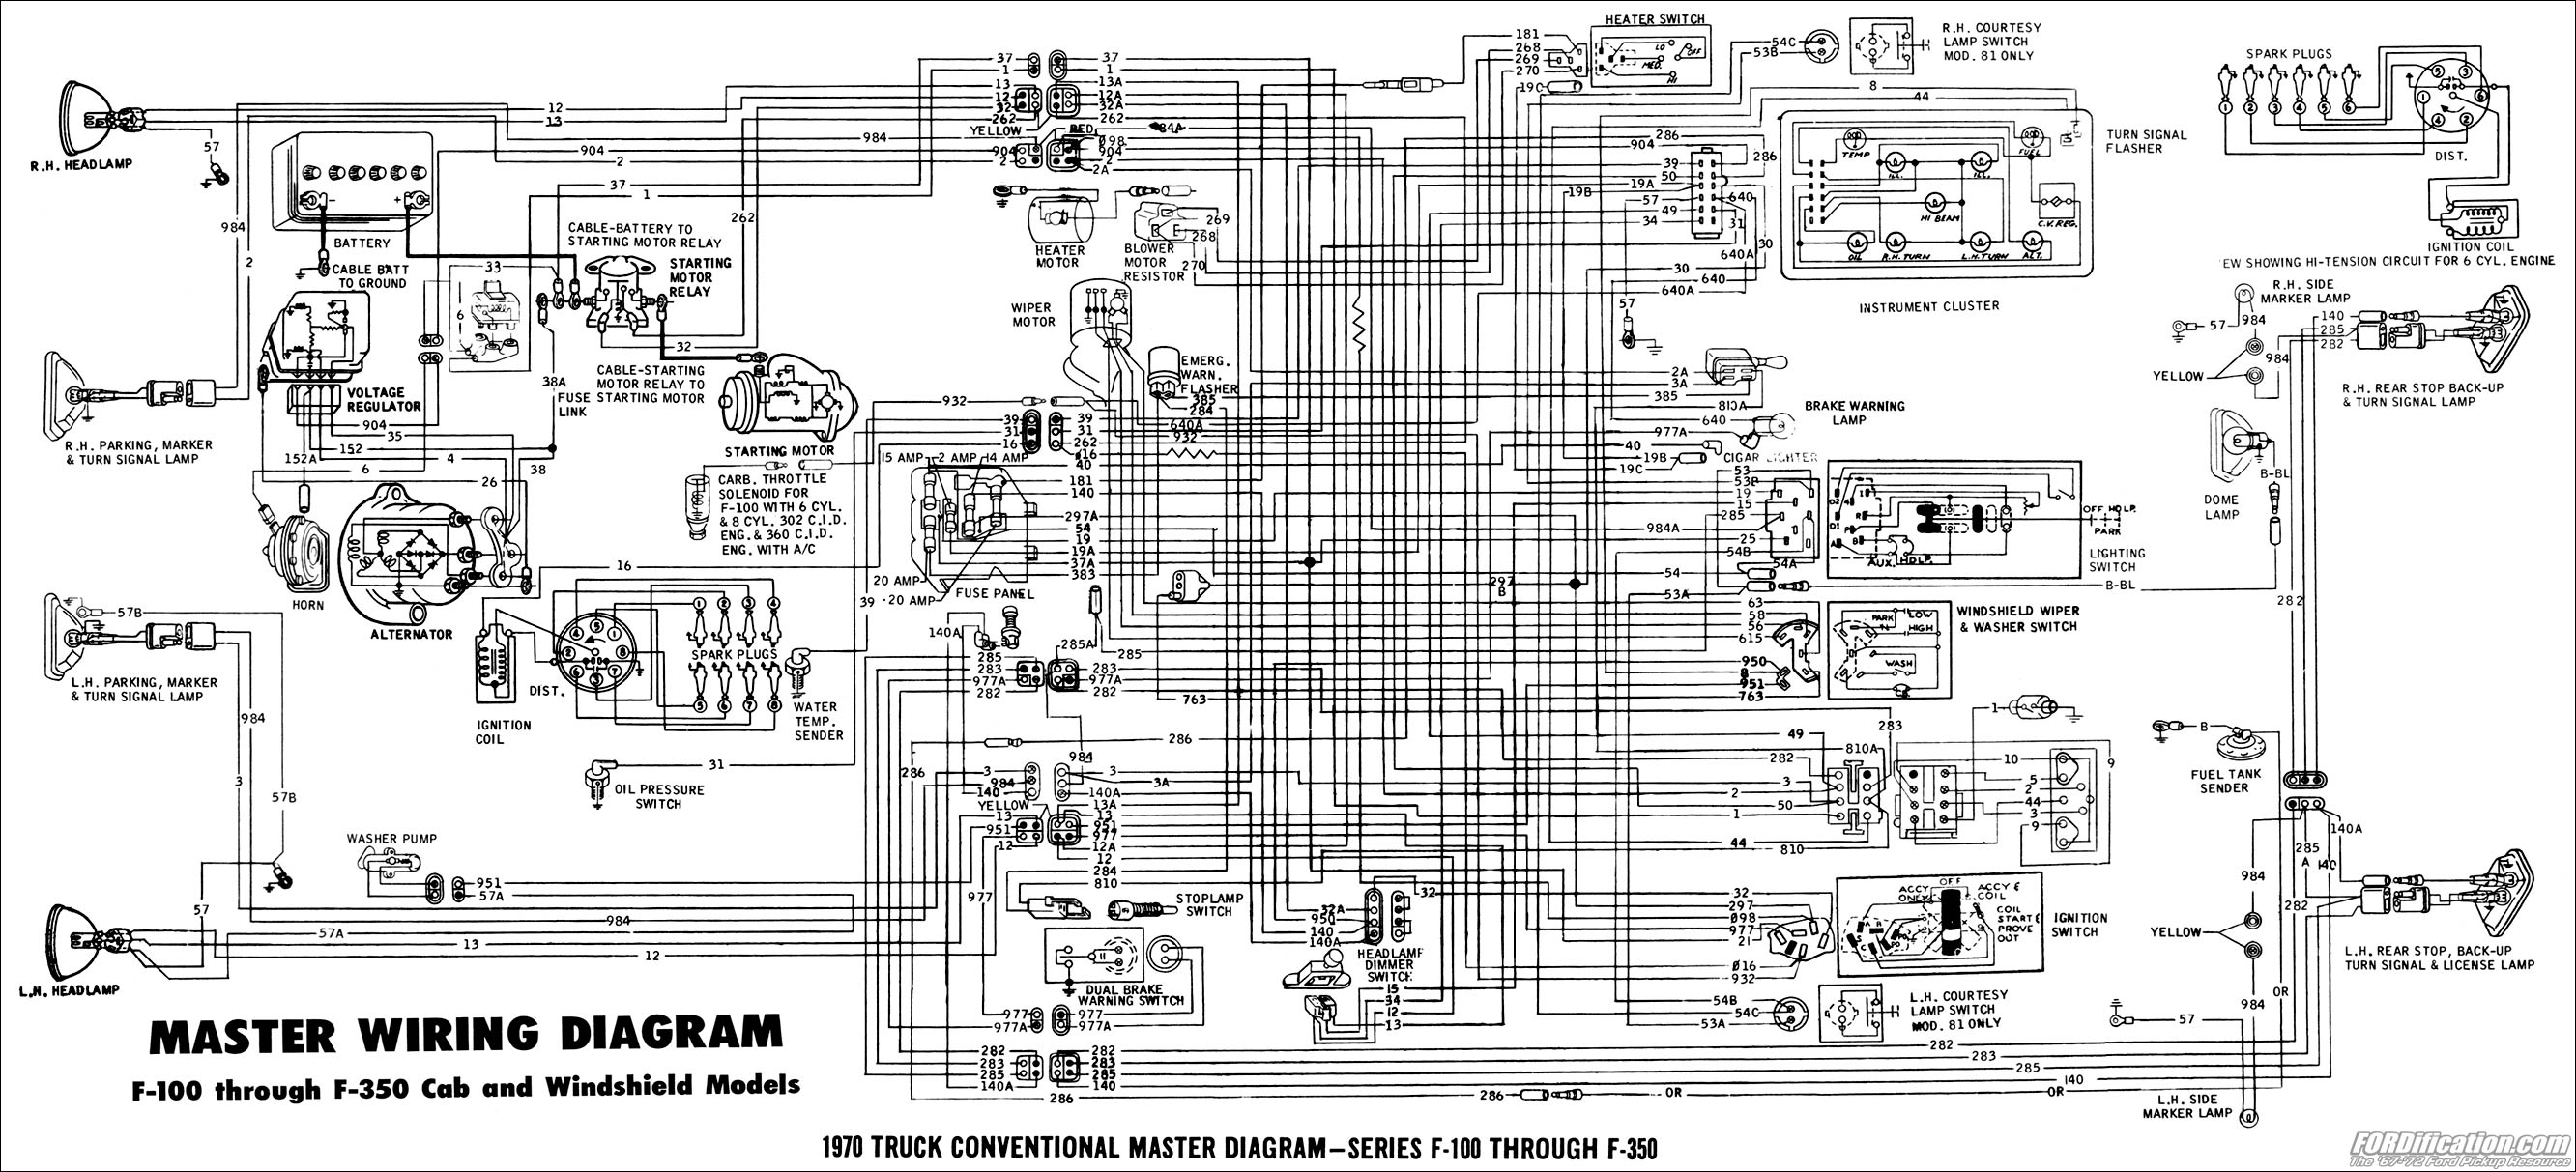 1972 Ford Fuel Pump Wiring Diagram - Trusted Wiring Diagram  Silverado Fuel Pump Wiring Harness Diagrams on silverado transmission wiring diagram, silverado fog light wiring diagram, silverado rear view mirror wiring diagram, 2001 chevy silverado wiring diagram, silverado side mirror wiring diagram,